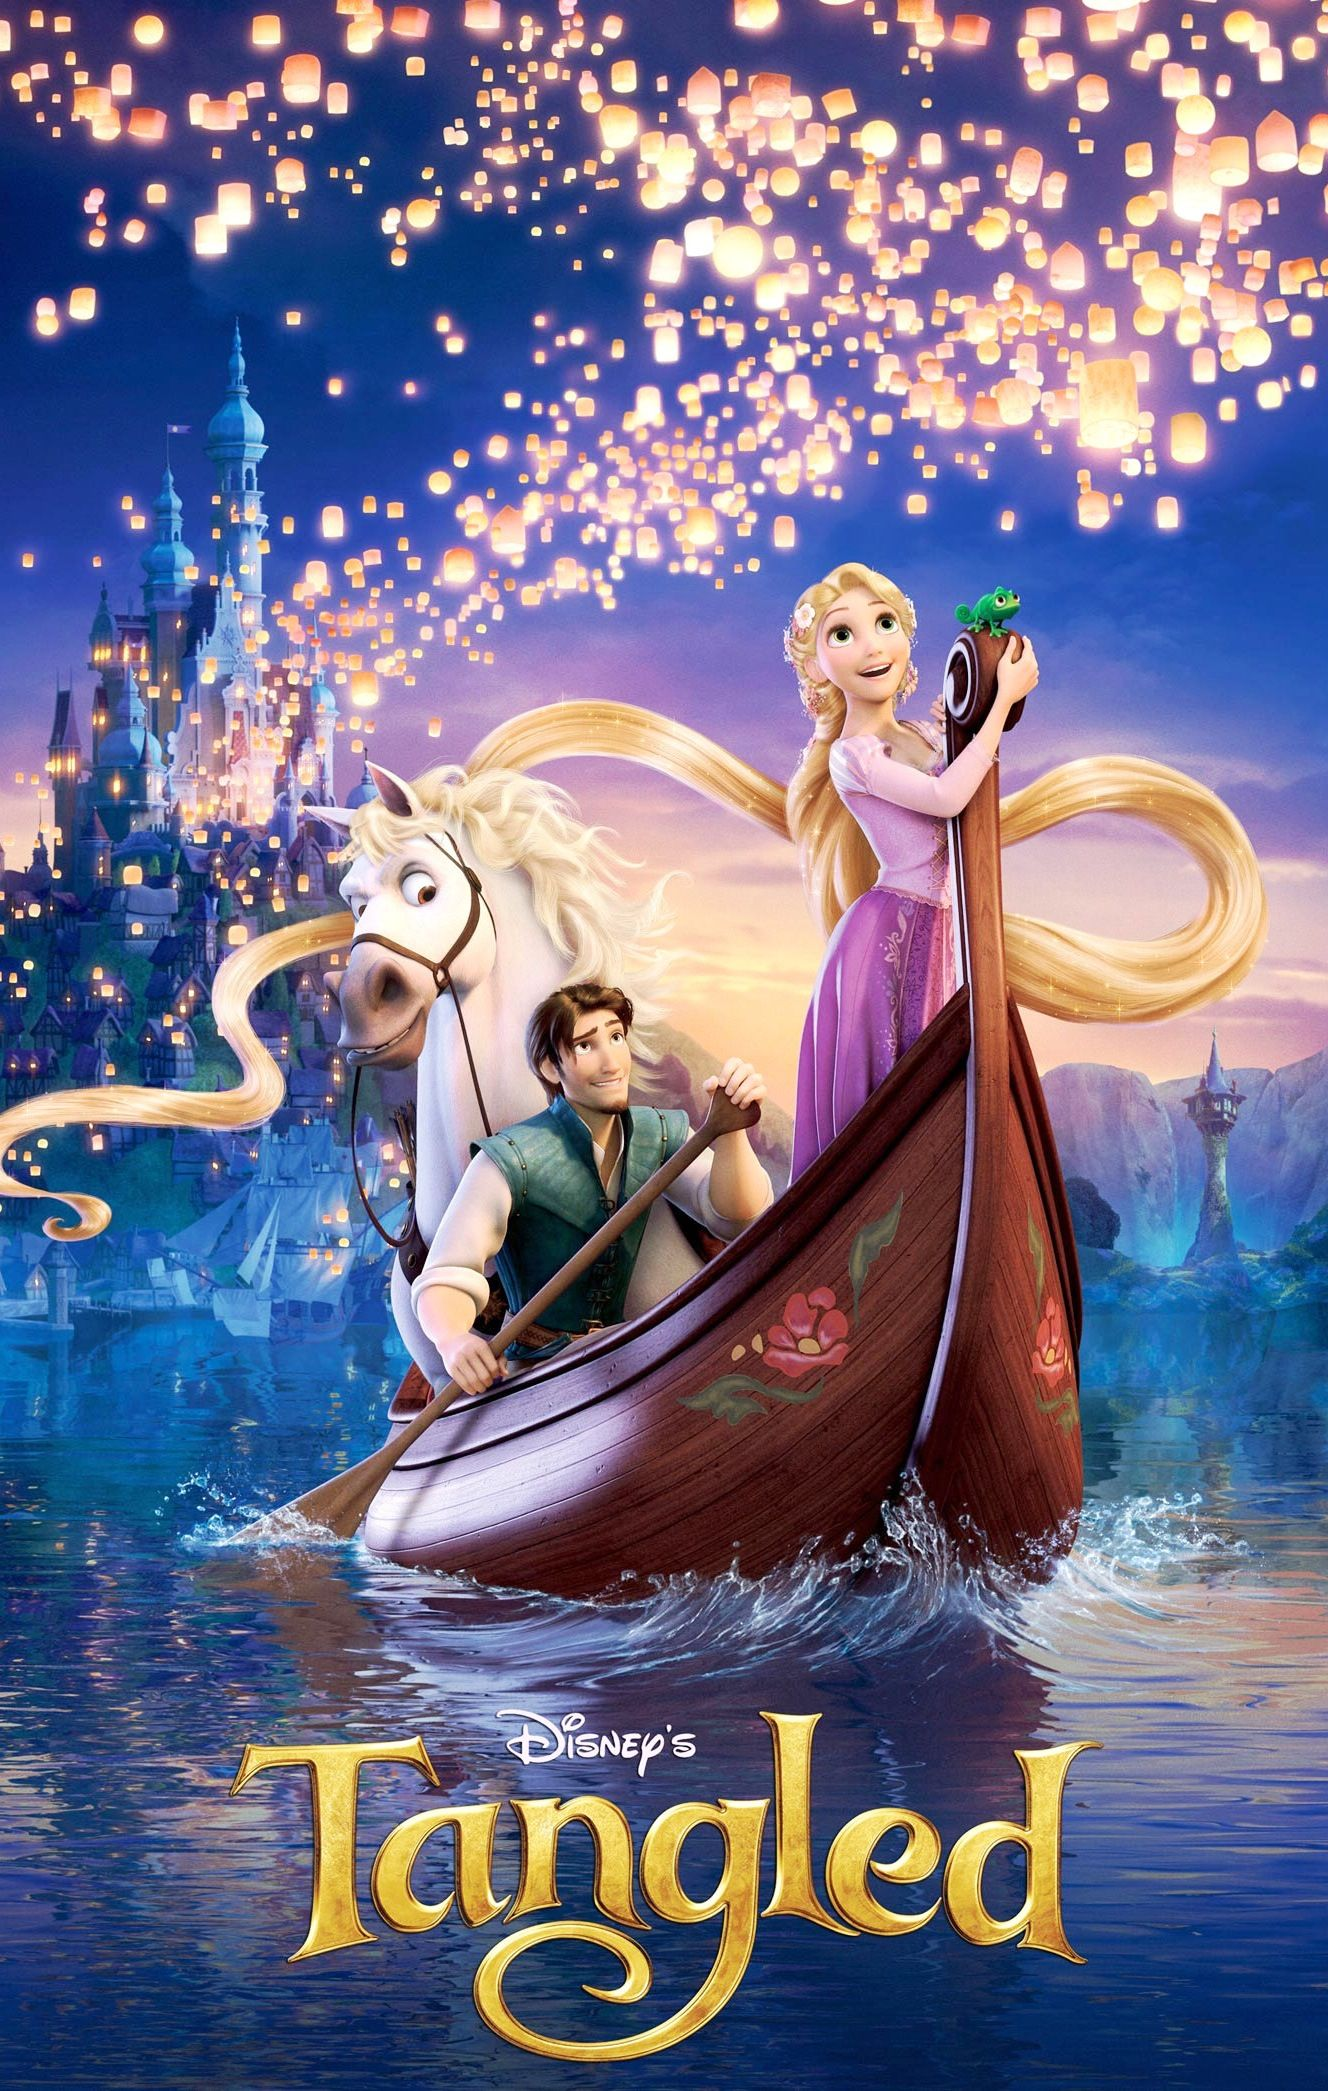 disney tangled film analysis Essays - largest database of quality sample essays and research papers on disney tangled film analysis.